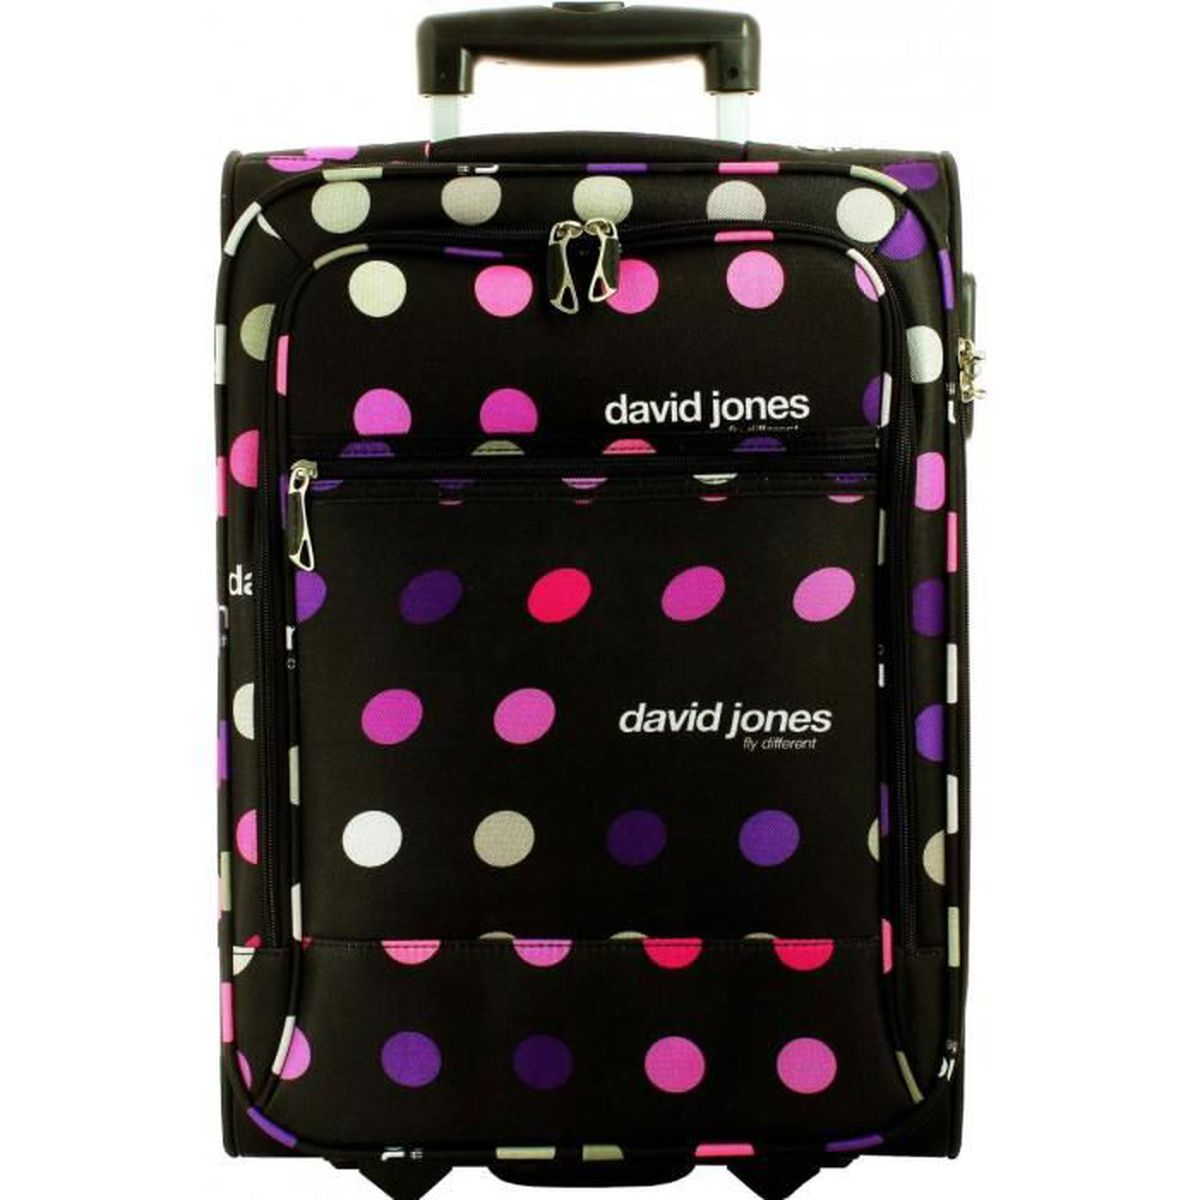 valise cabine ryanair david jones pois petits roses ba50261p achat vente valise bagage. Black Bedroom Furniture Sets. Home Design Ideas